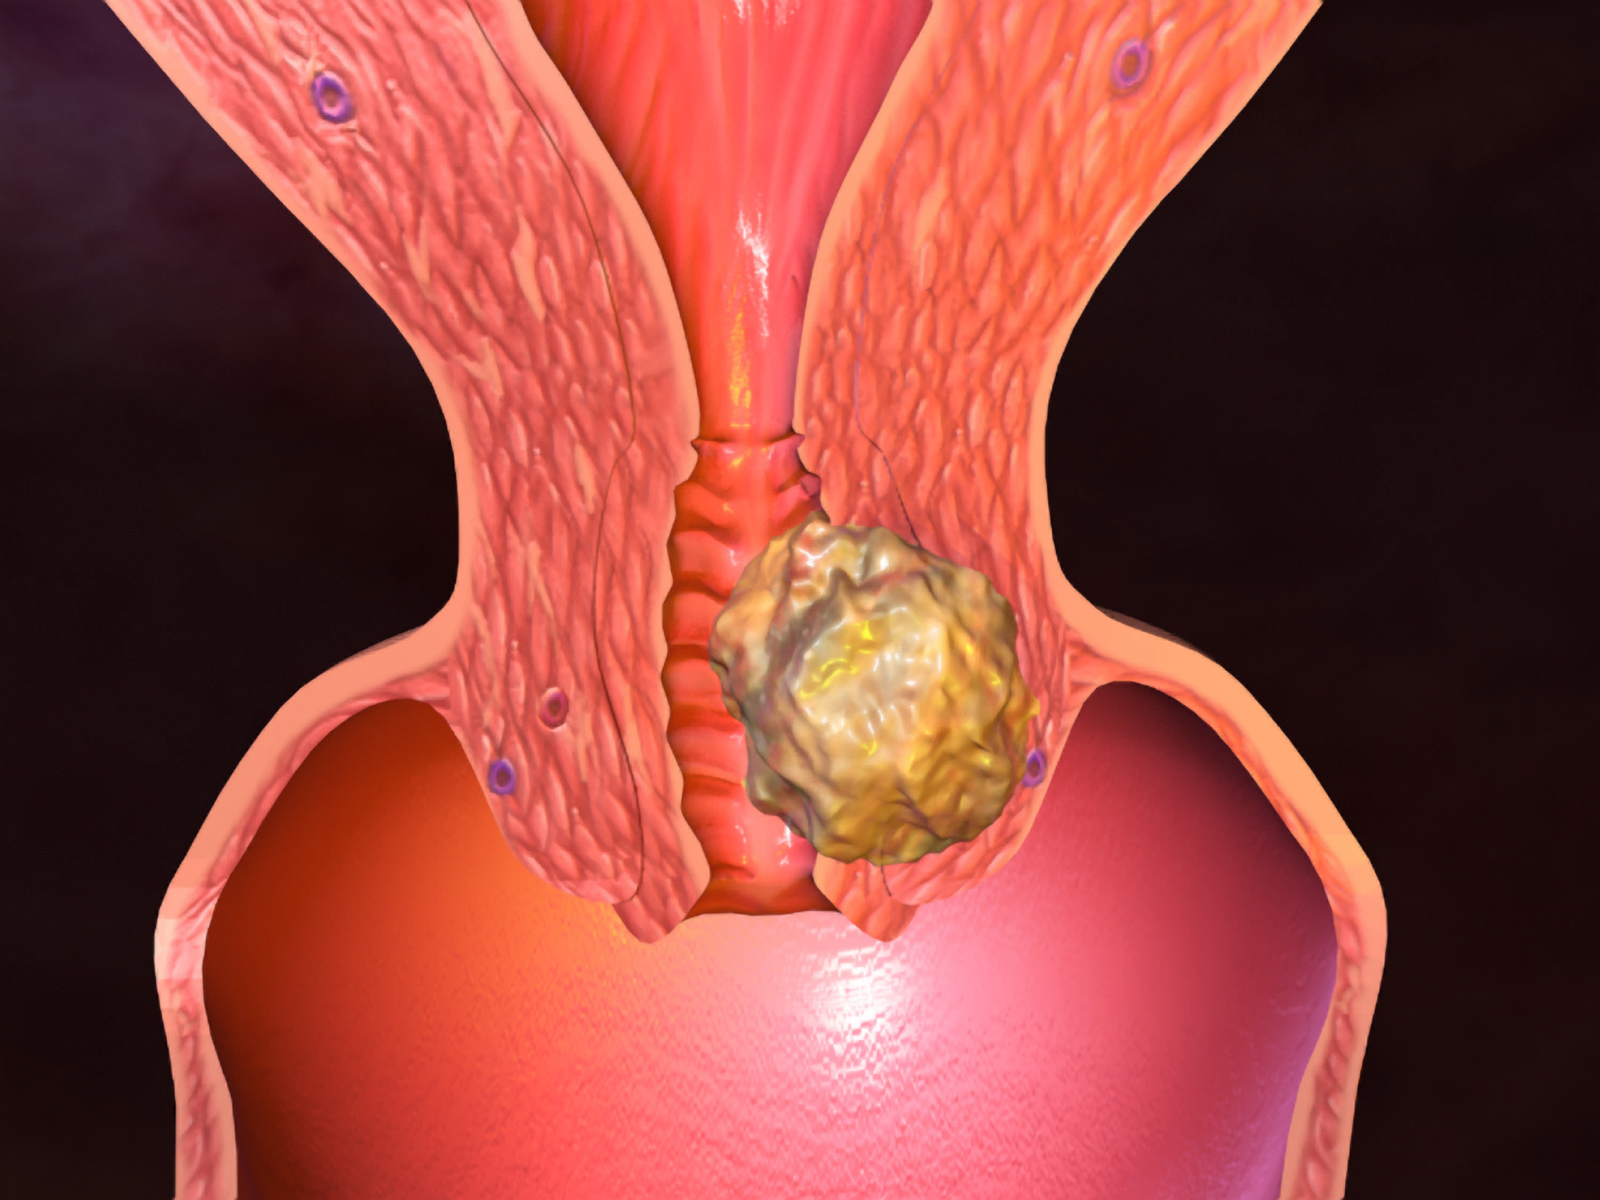 Endometrial Cancer, cancer of the uterus